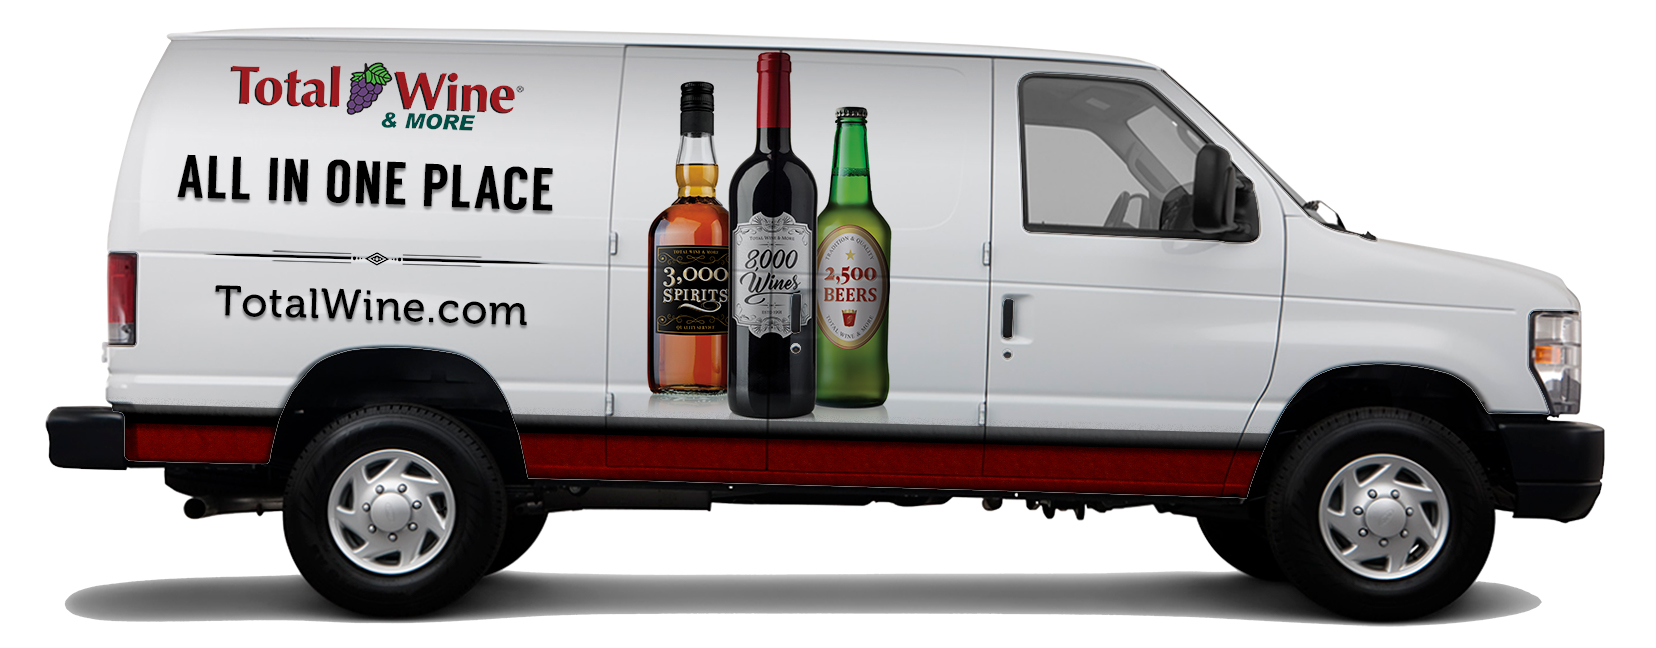 Total Wine van mockup4